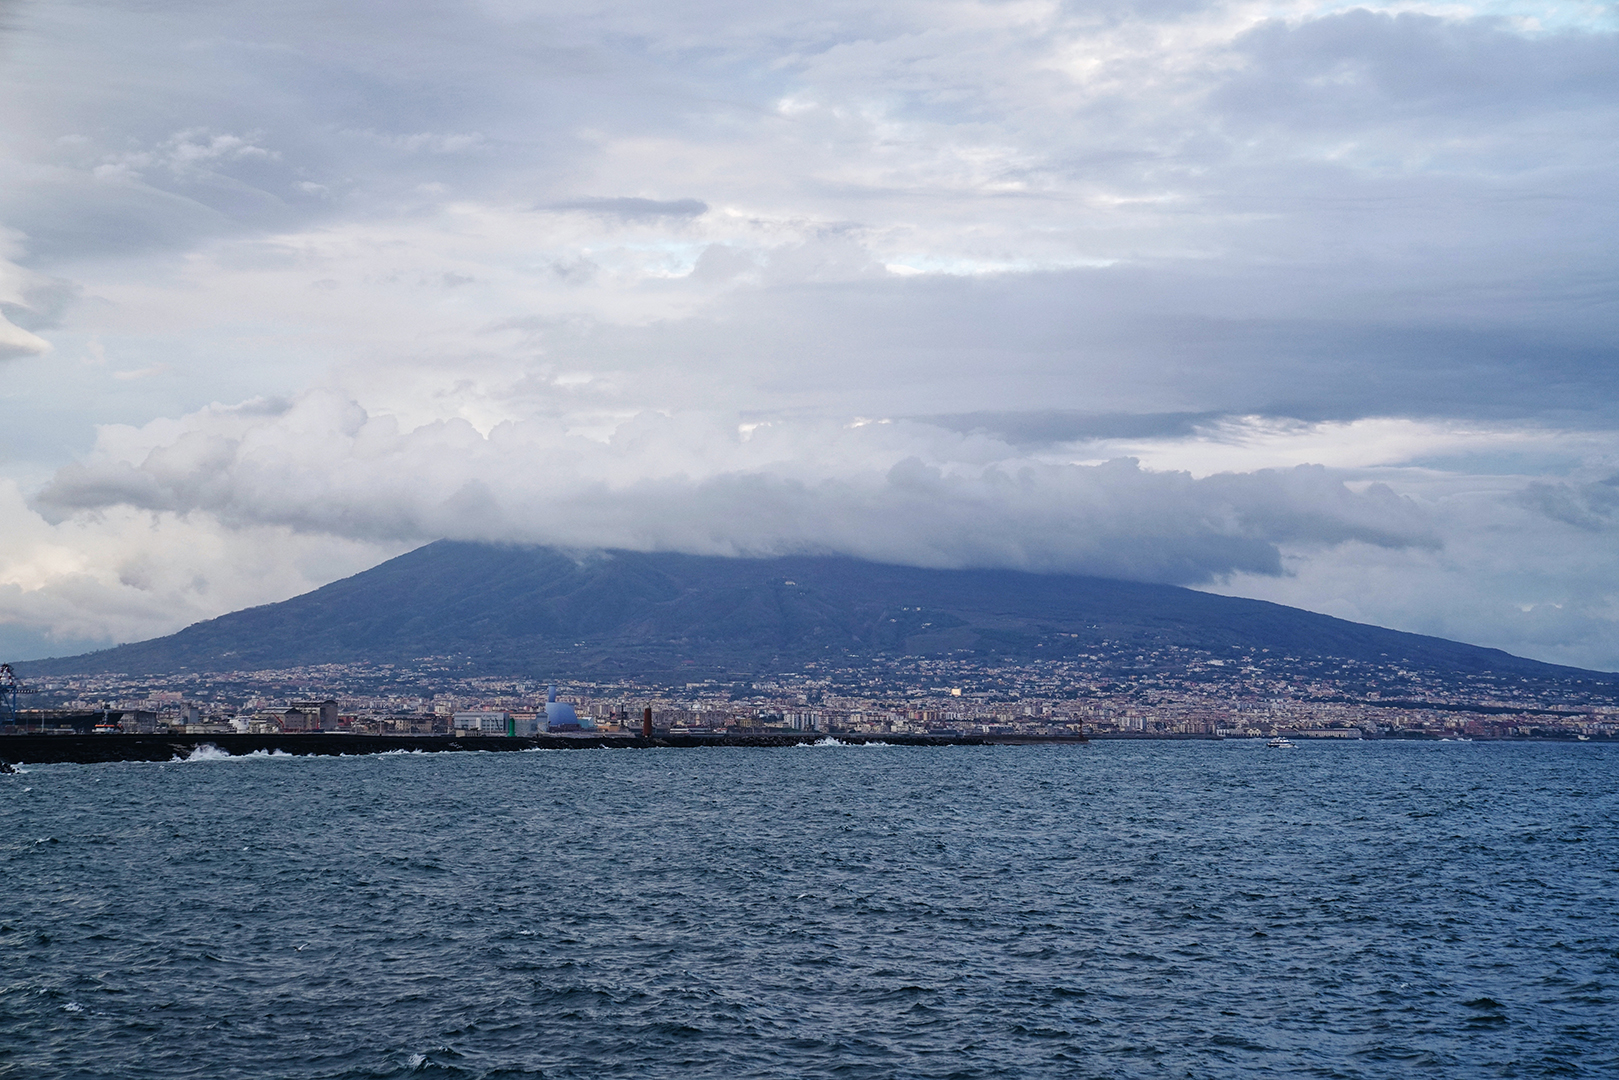 Mount Vesuvius,  Famed volcano known for the destruction of Pompeii in AD 79,  View from Naples Harbor.